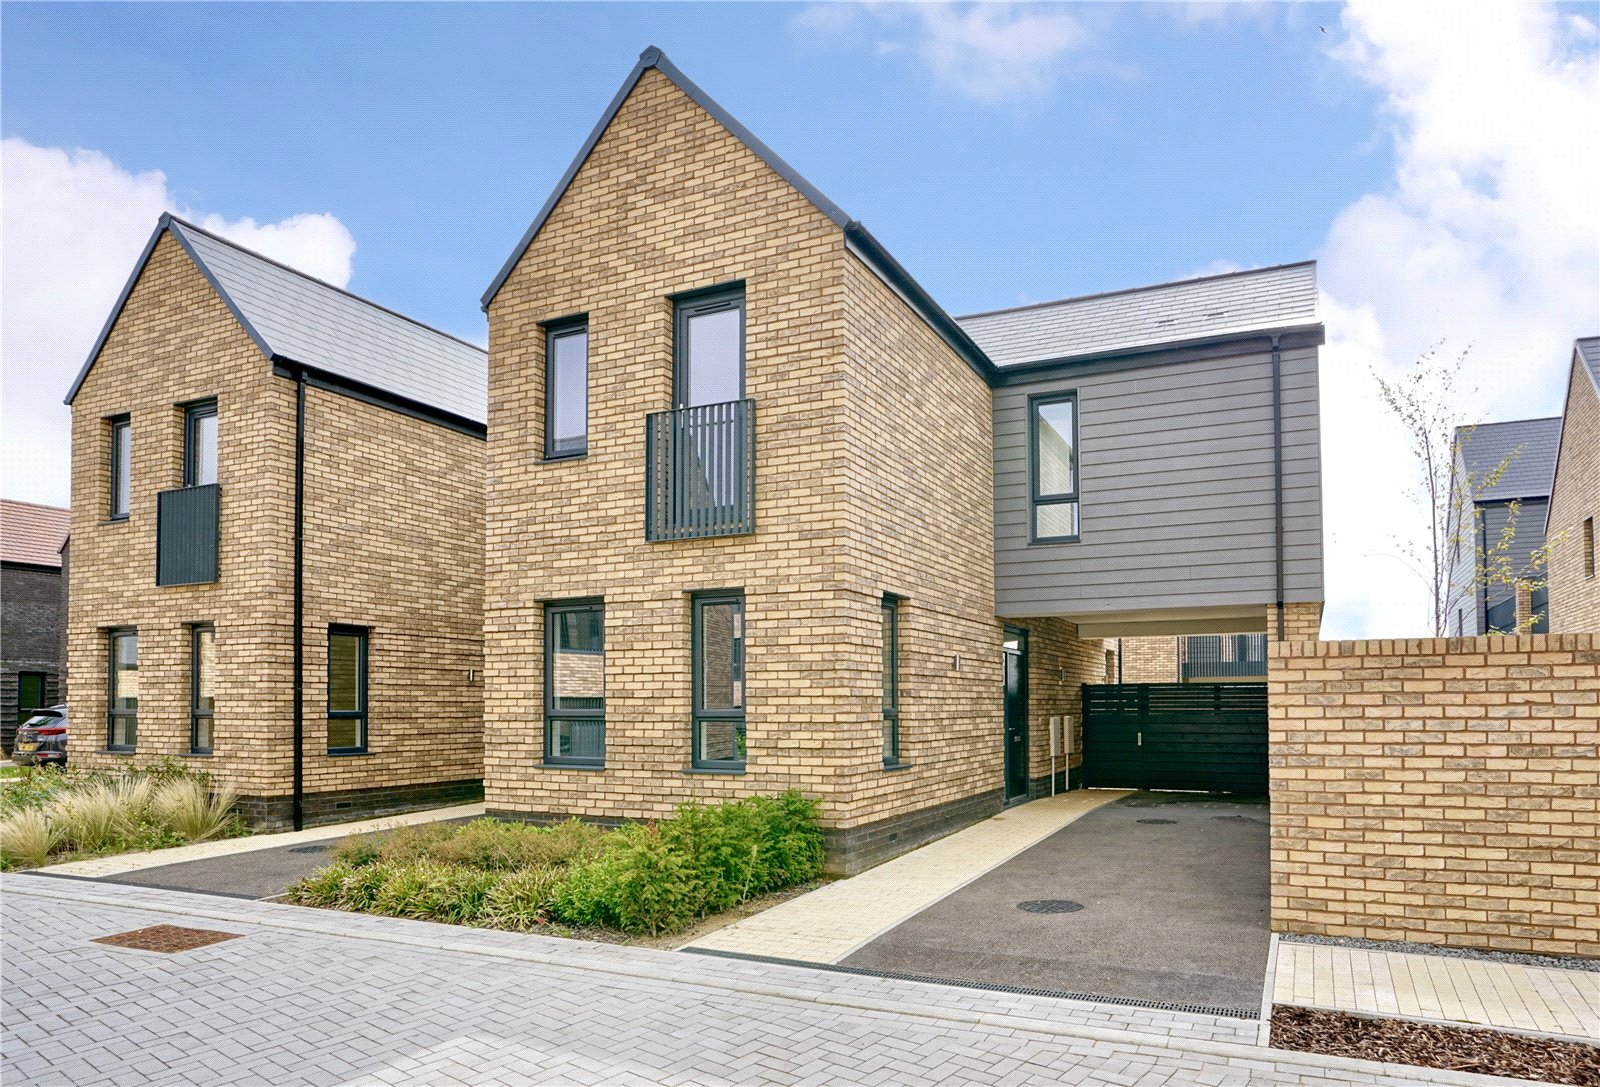 3 bed house for sale in Alconbury Weald, PE28 4LD  - Property Image 1